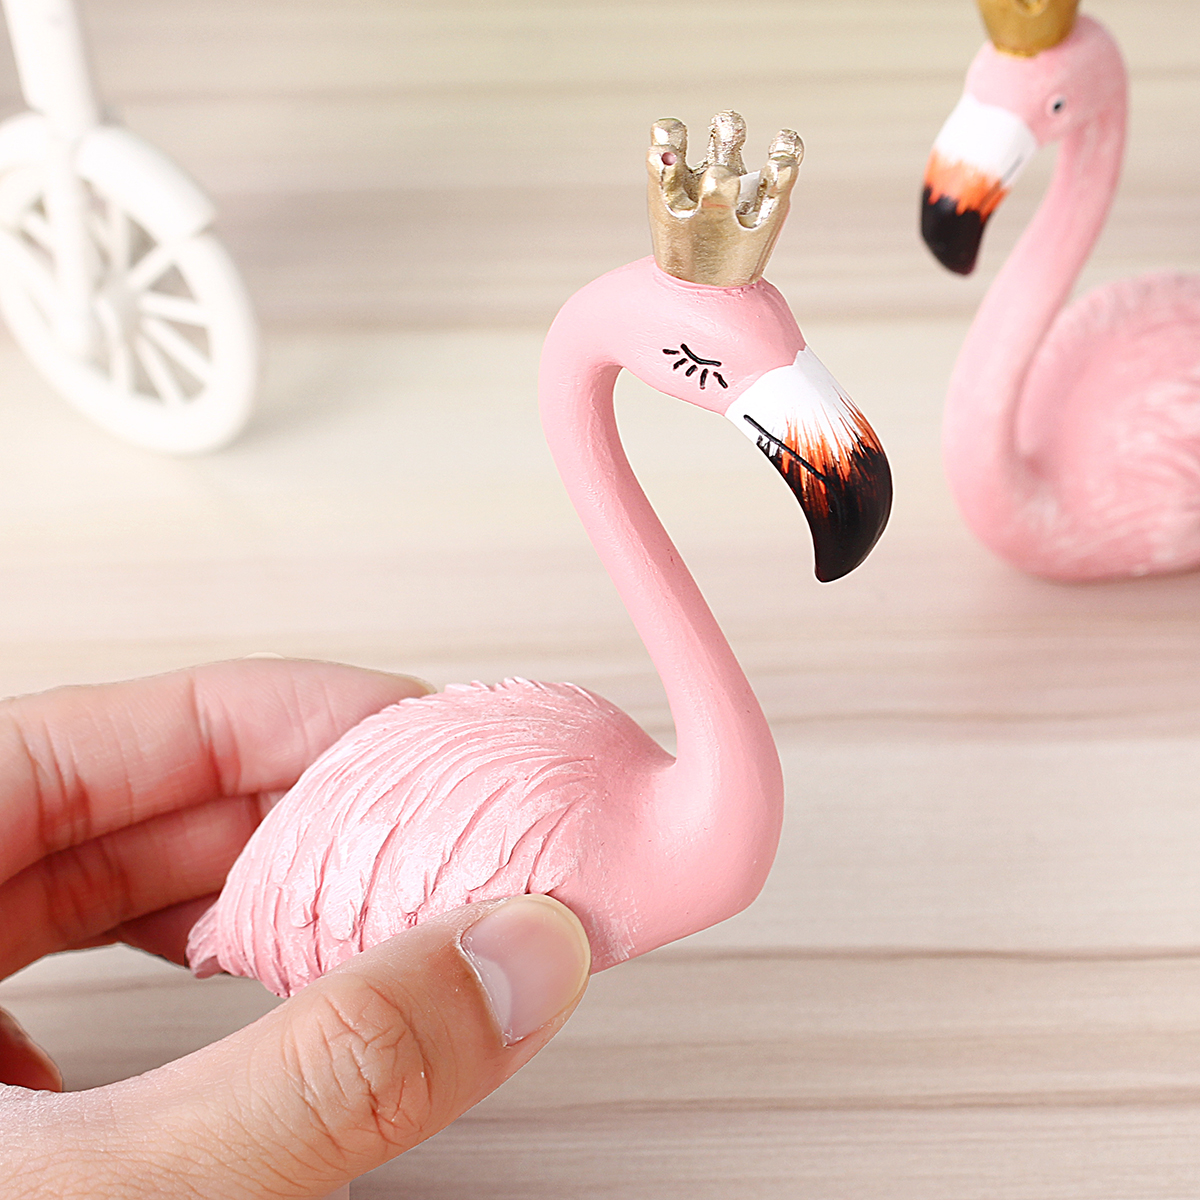 Resin Flamingo Ornament Garland Decorations Home Decor Wedding Gift